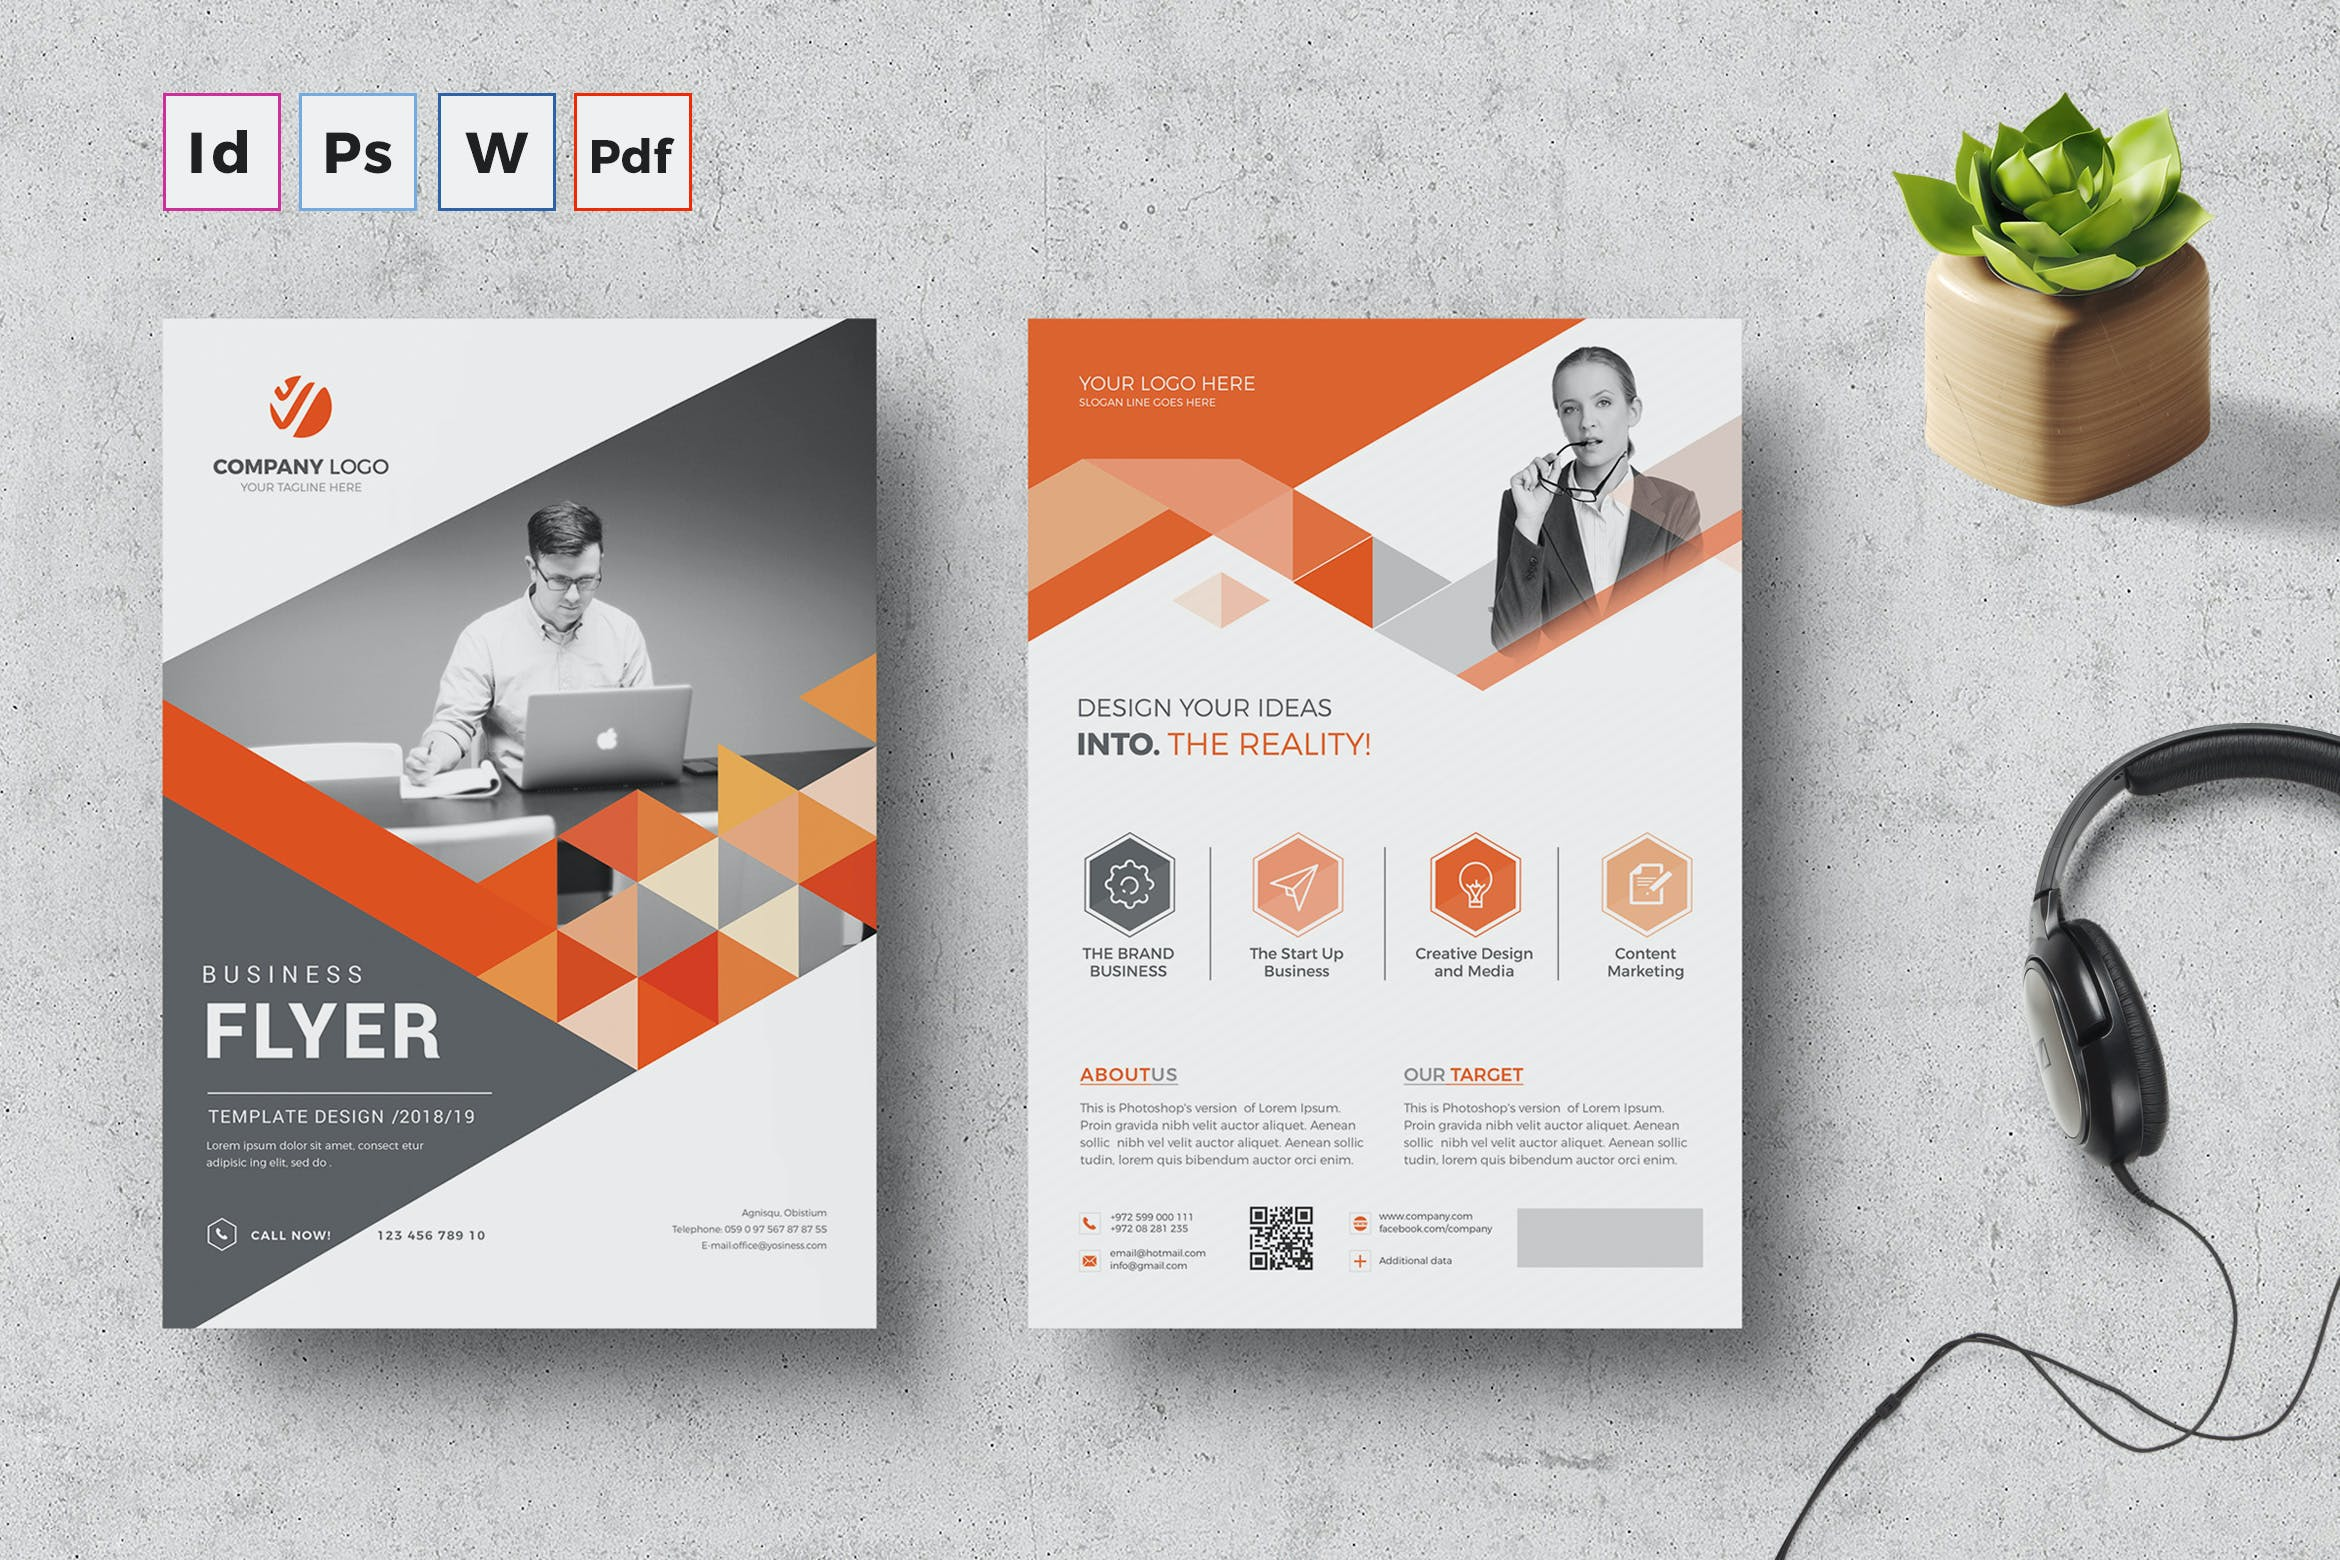 Corporate Flyer Template by Creativity-Design on Envato Elements